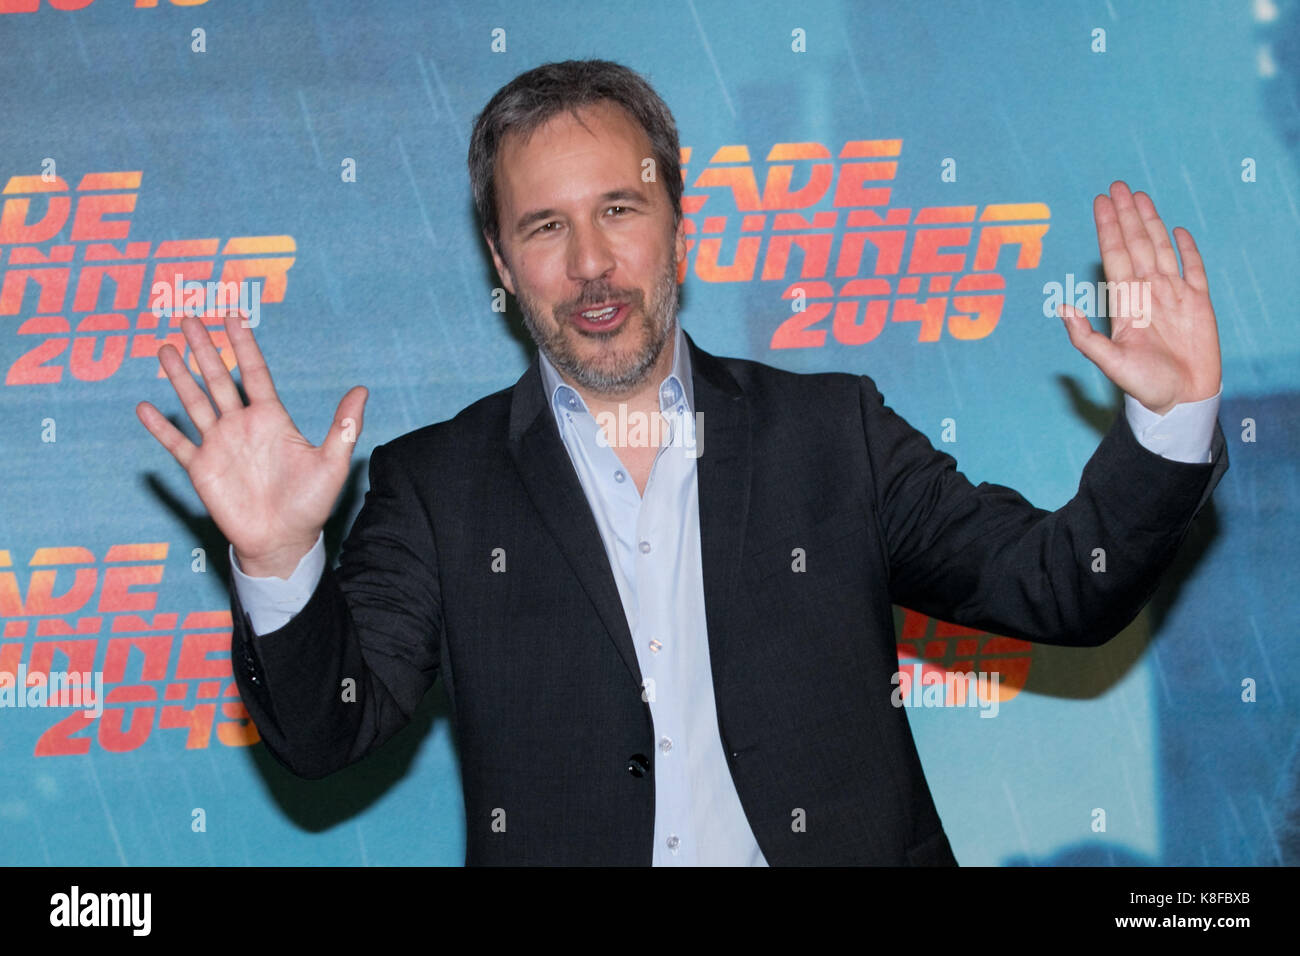 Rome, Italy. 19th Sep, 2017. Rome, photocall film 'Blade Runner 2049'. In the photo: Denis Villeneuve Credit: - Stock Image